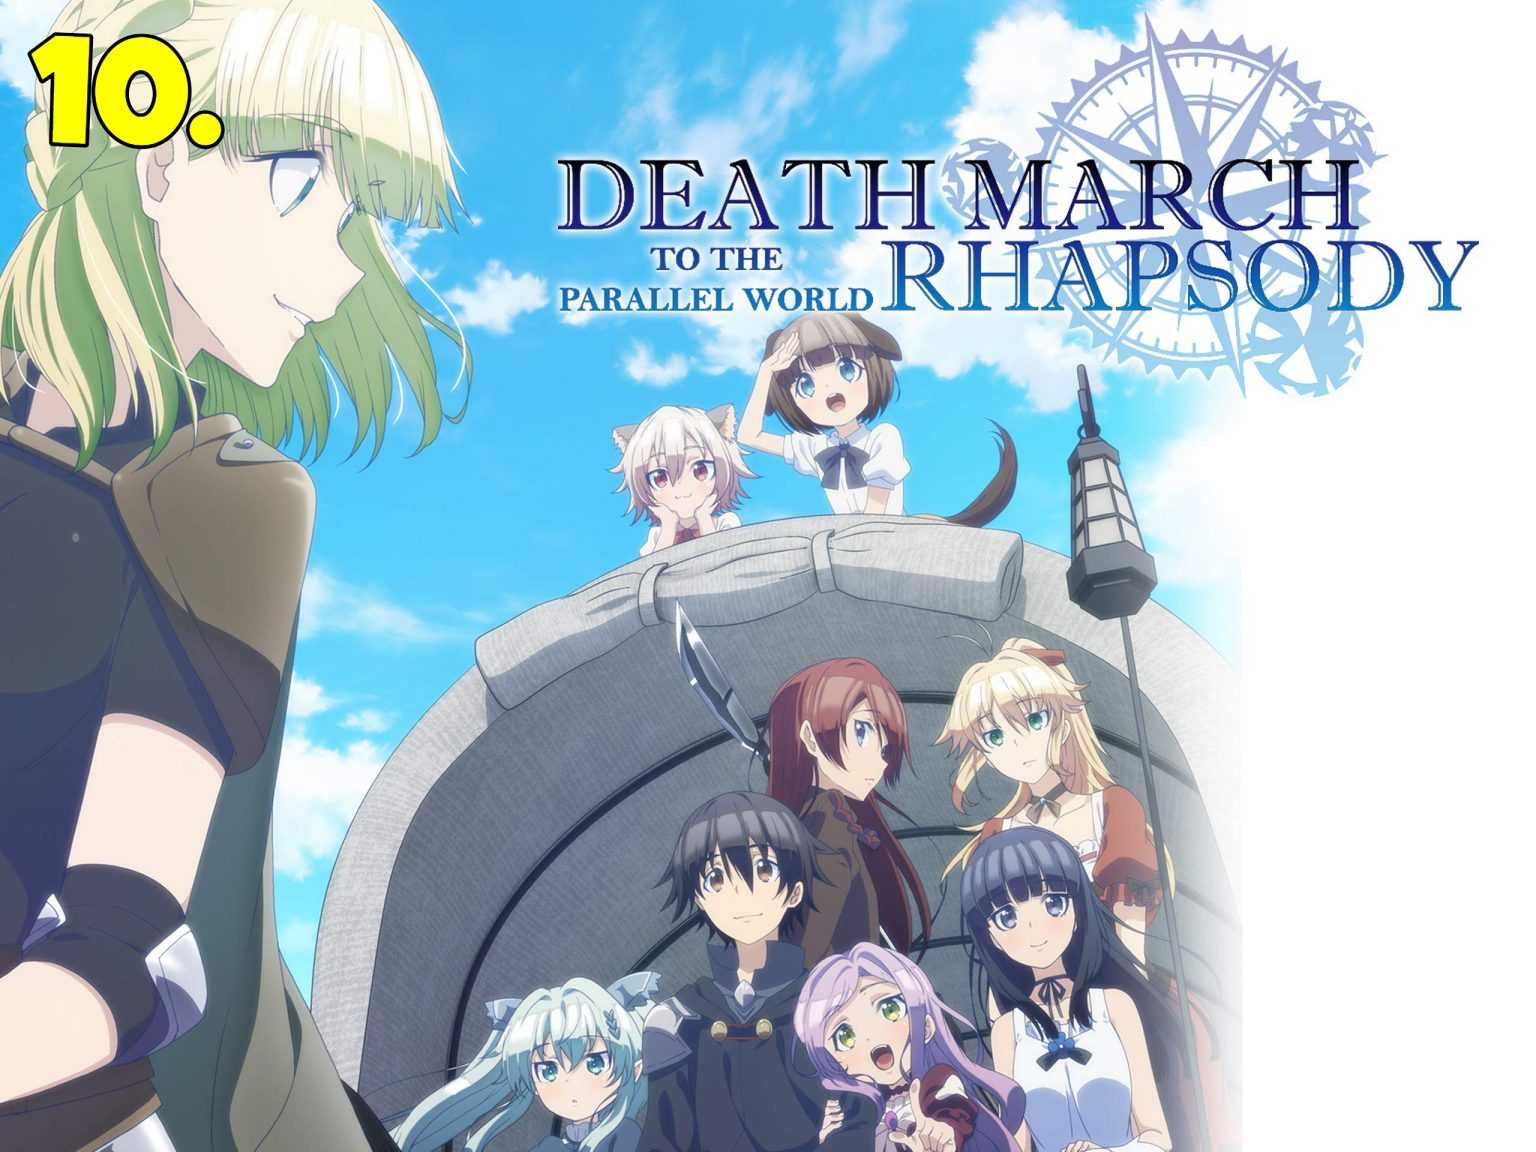 Death-March-to-the-Parallel-World-Rhapsody